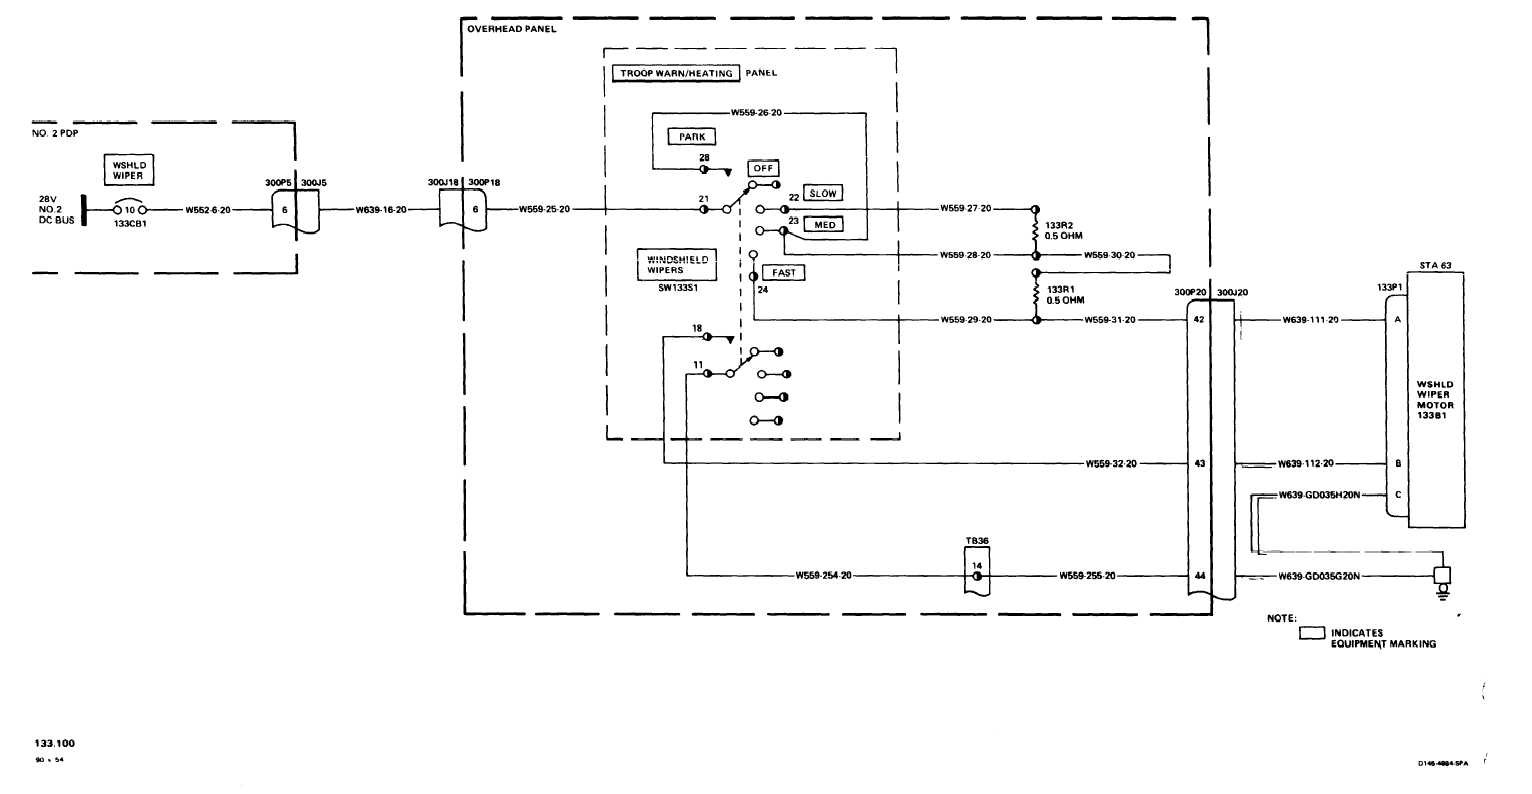 68 Caprice Wiring Diagram